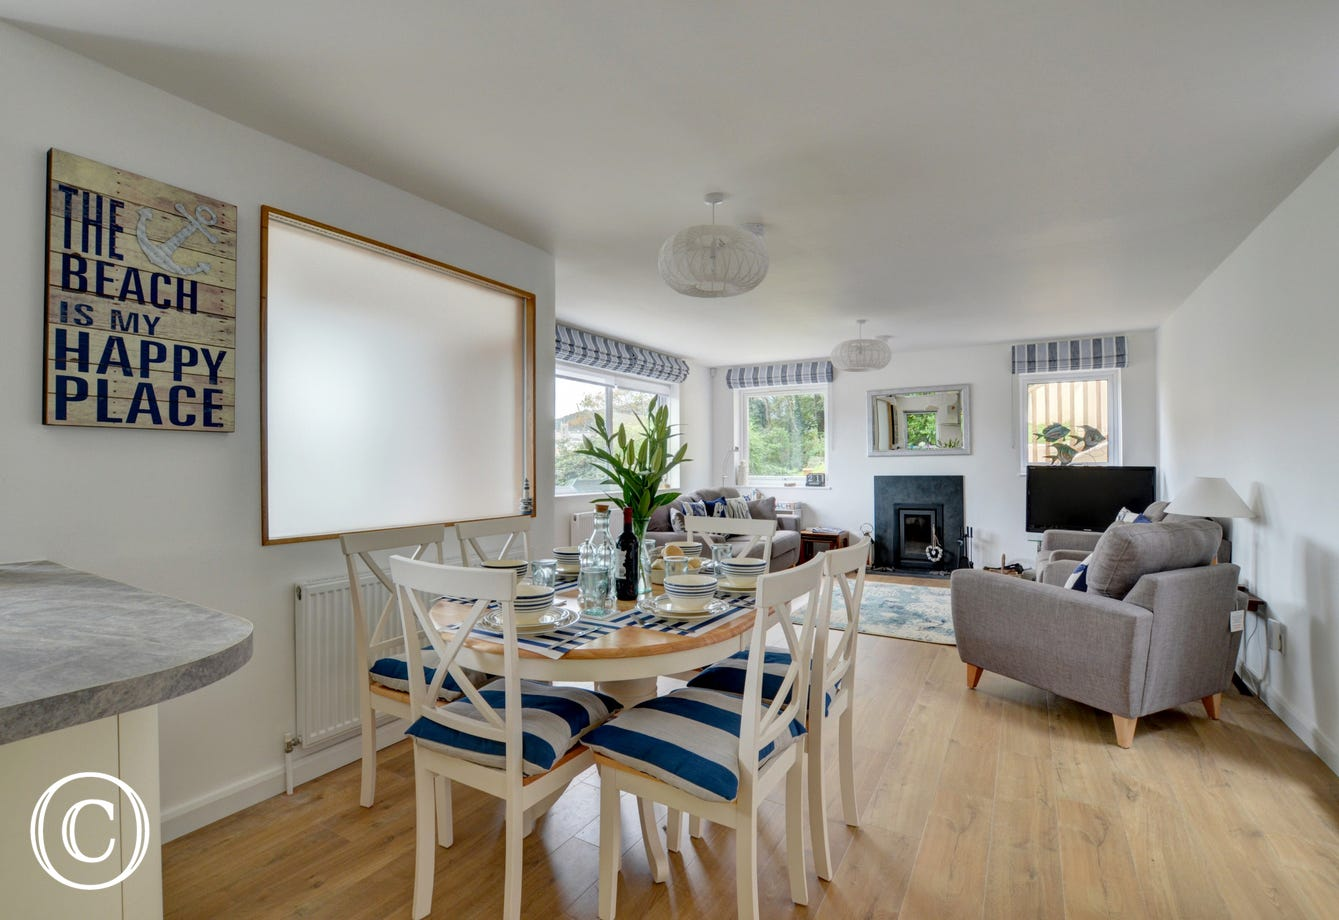 A wonderful open plan space to enjoy with family and friends